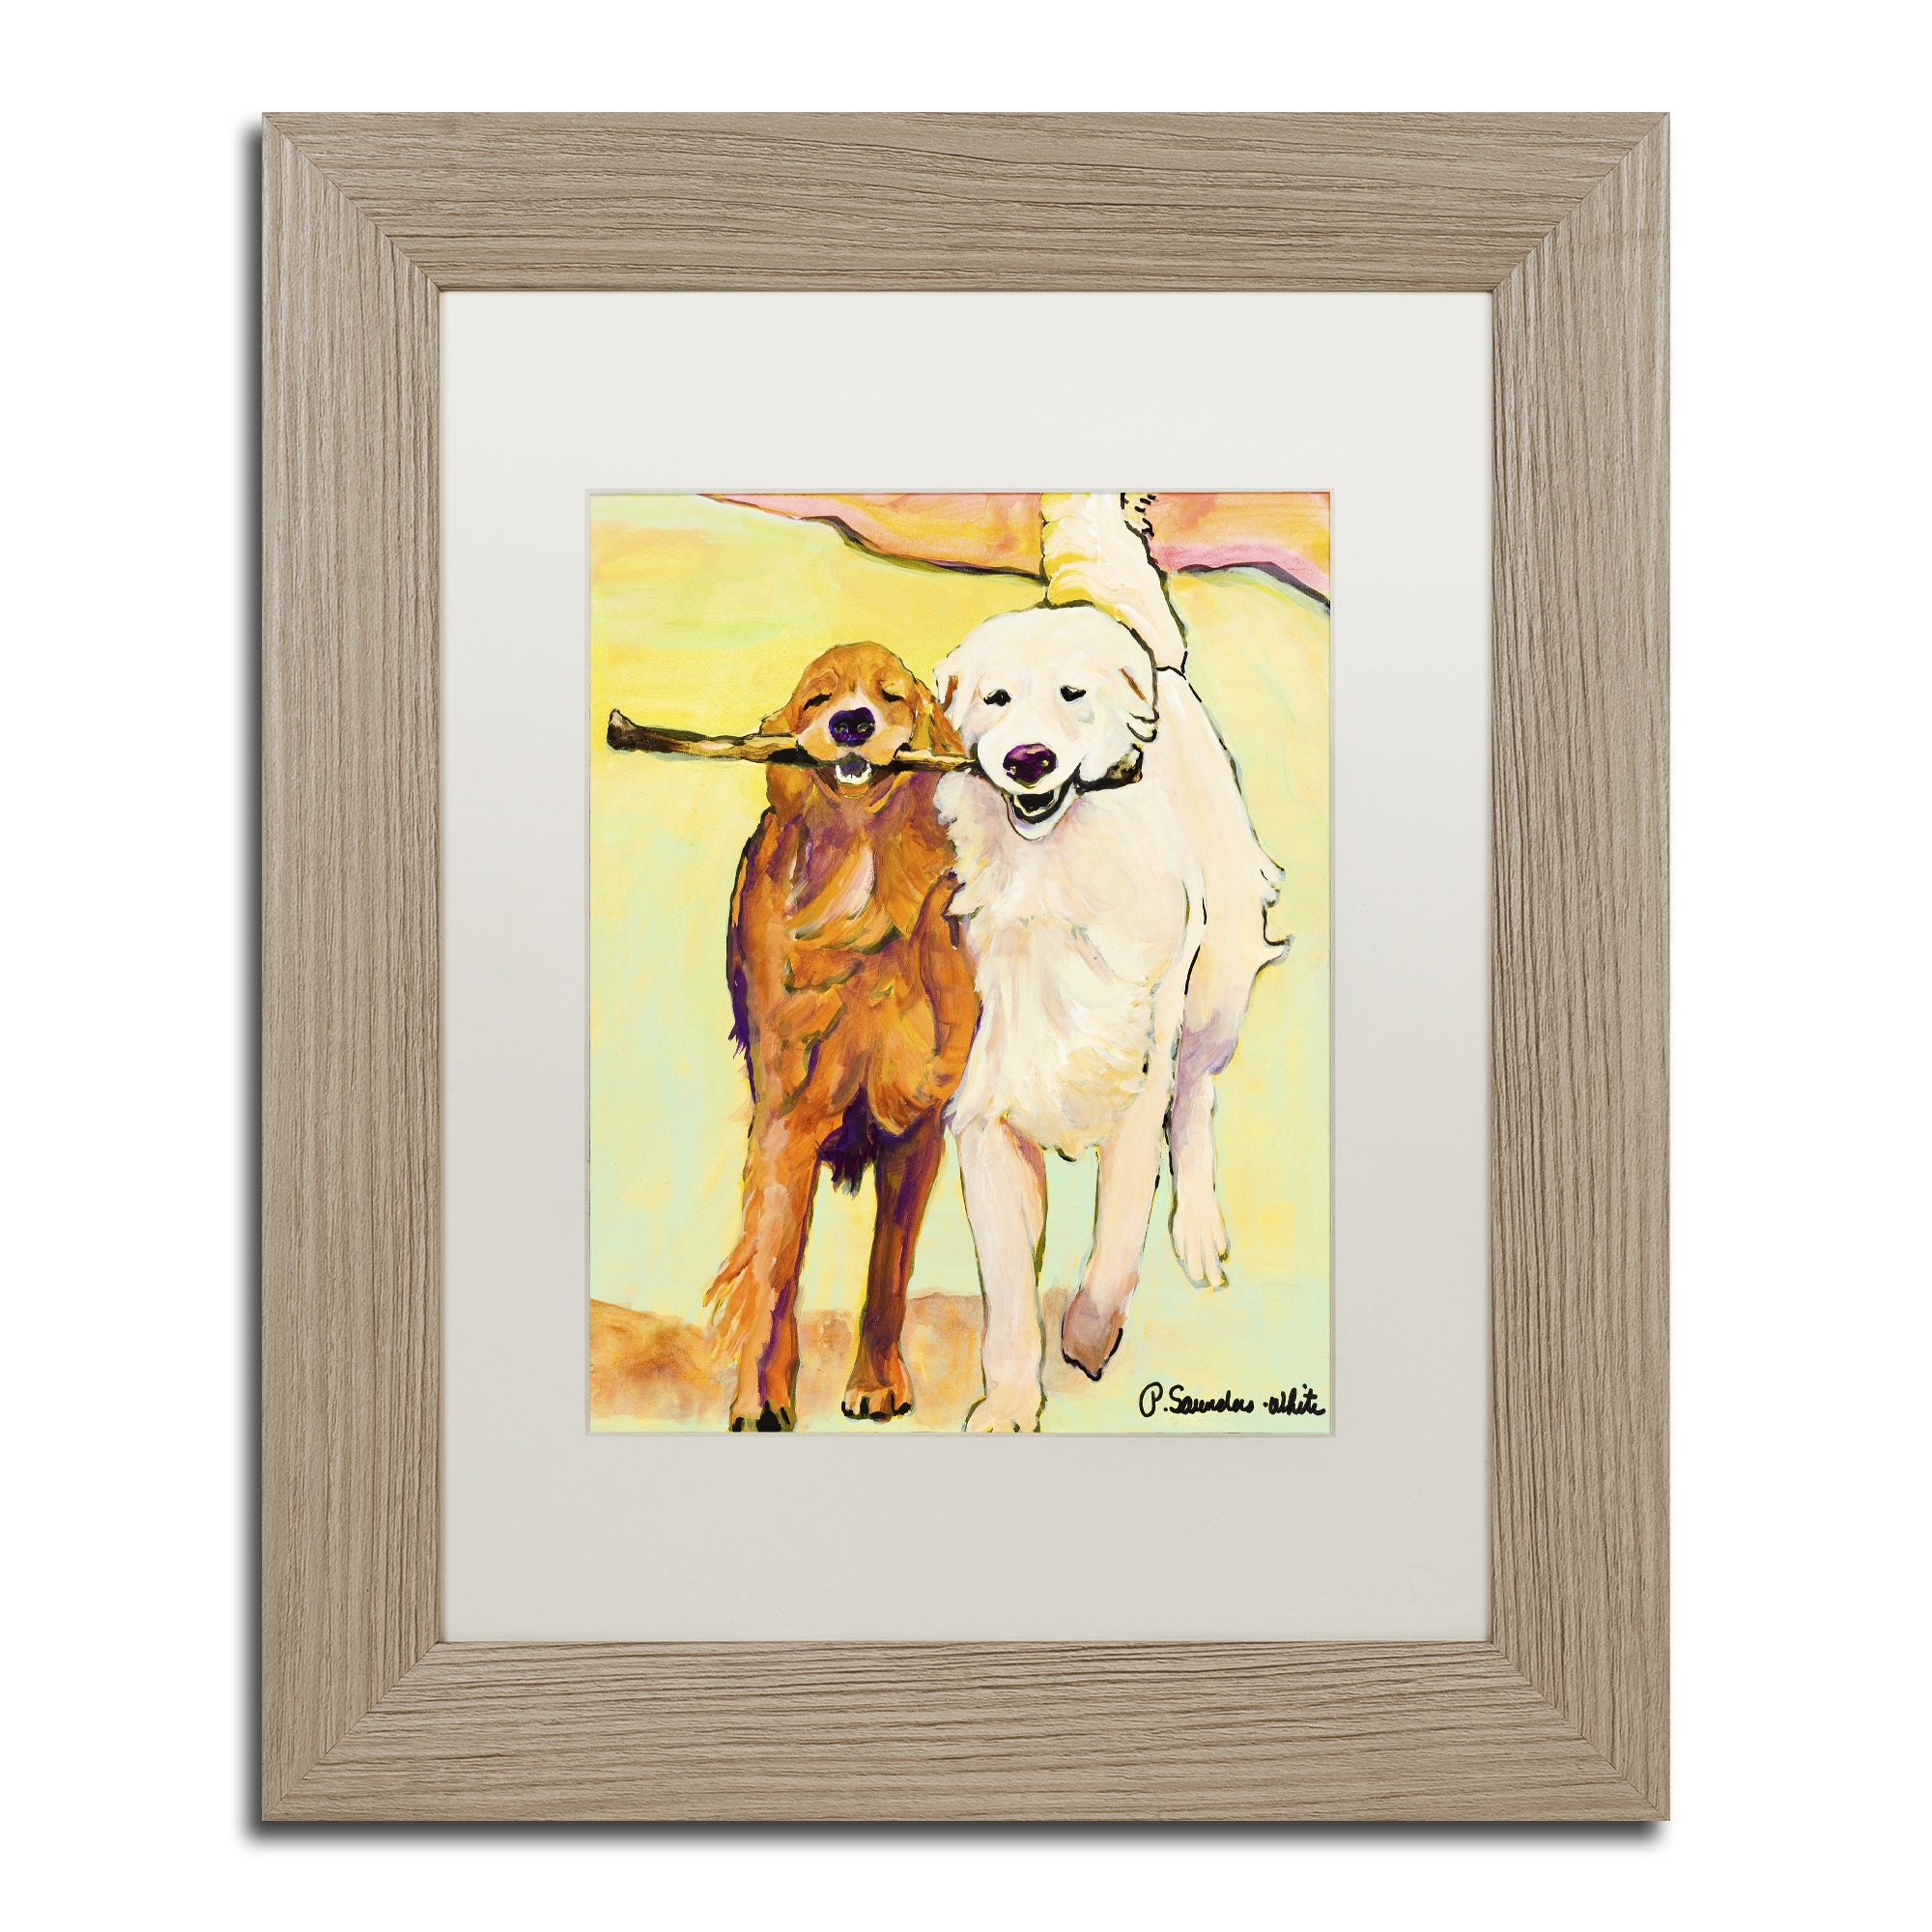 Pat Saunders-White \'Stick With Me 1\' White Matte, Birch Framed Wall ...